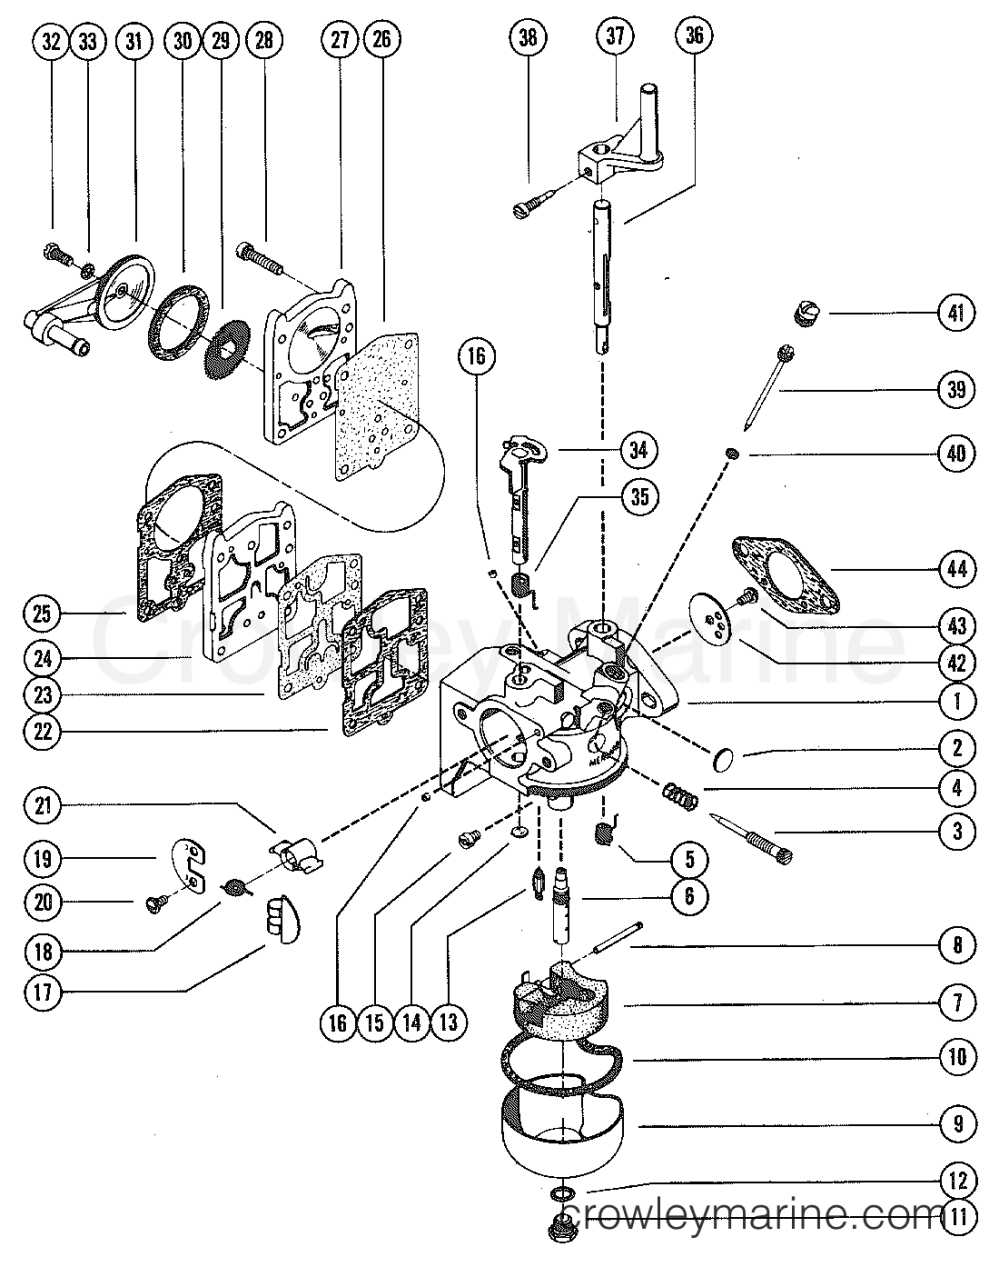 medium resolution of diagram moreover mercury outboard motor parts diagram on 7 5 mercury diagram further mercury 115 hp 4 stroke parts diagram moreover mercury